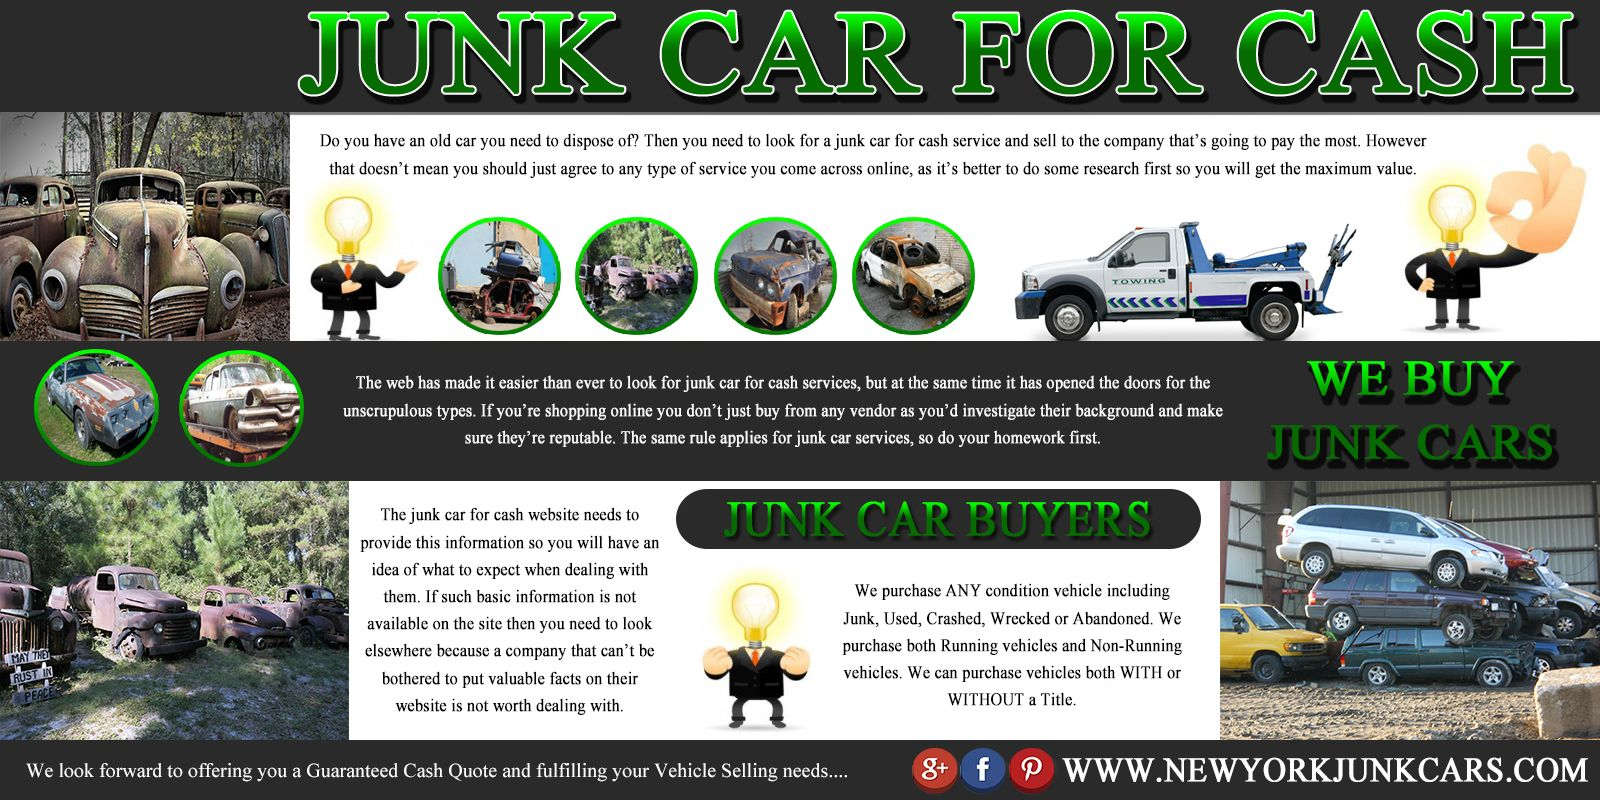 Cash For Junk Cars Online Quote If Your Old Car Has Reached The End Of Its Life And Is Now Just A